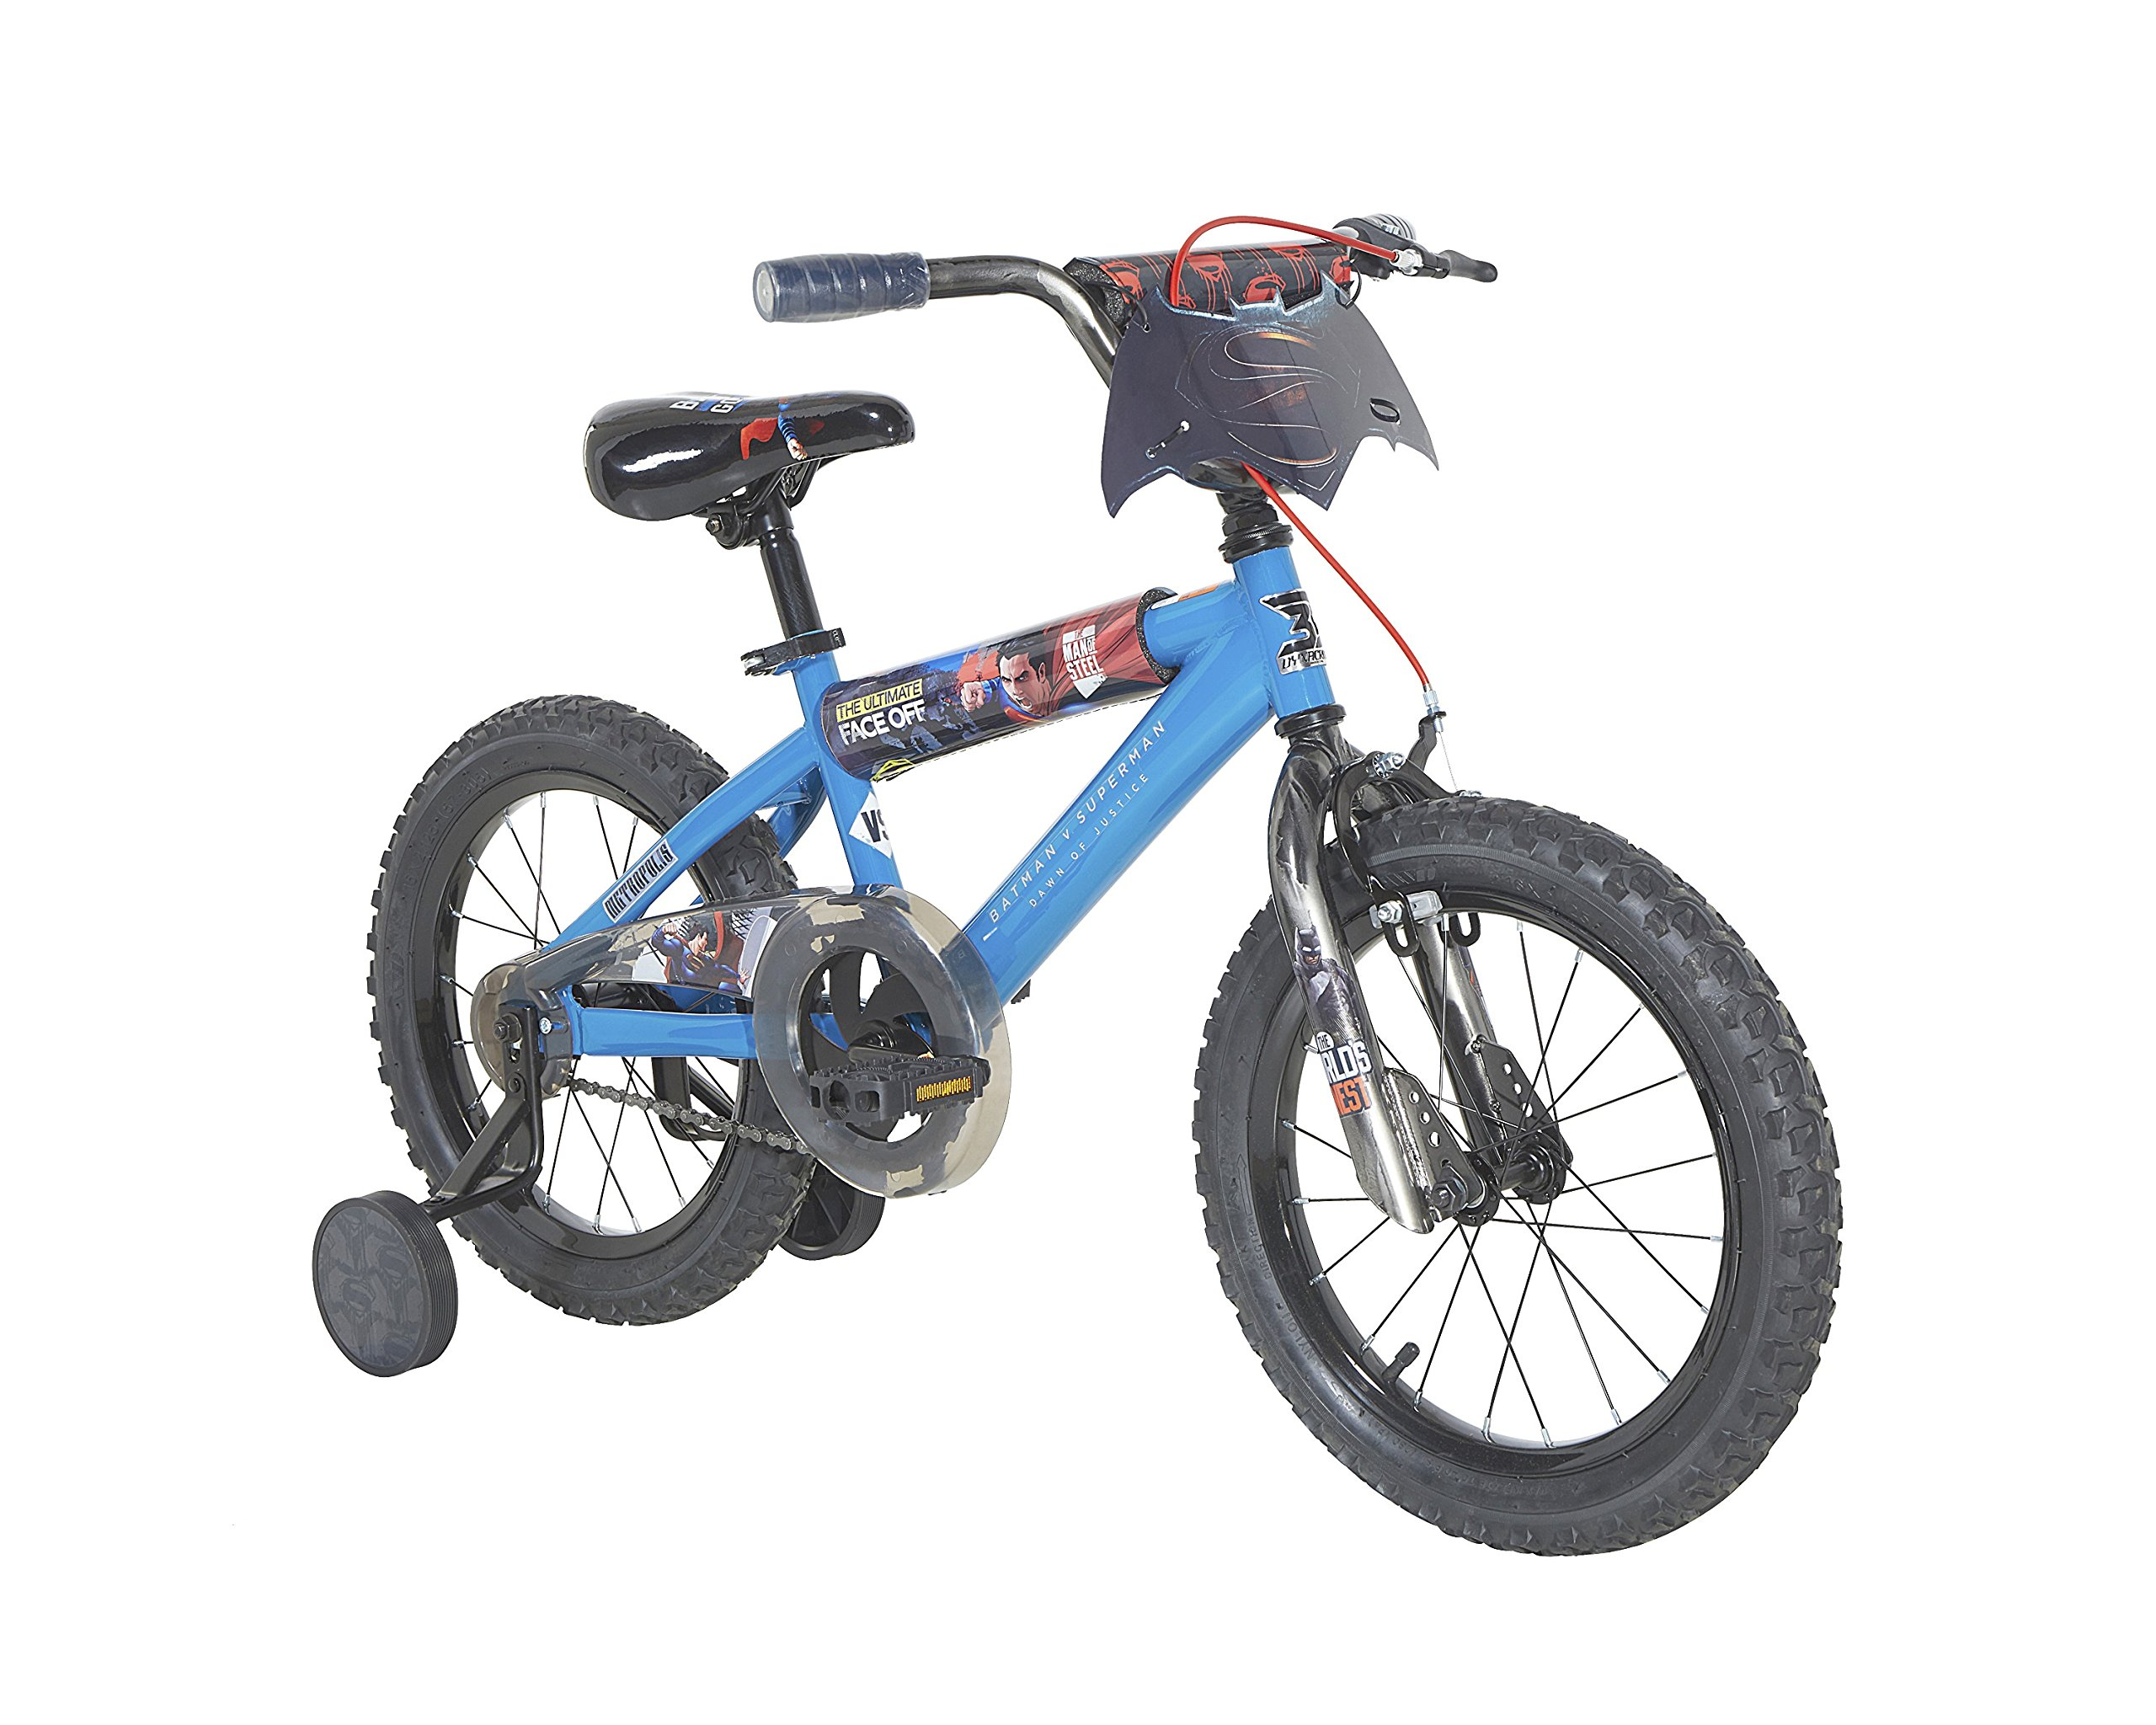 Batman vs Superman Boys Dynacraft Bike, Blue/Black/Red, 16'' by Batman vs Superman (Image #1)